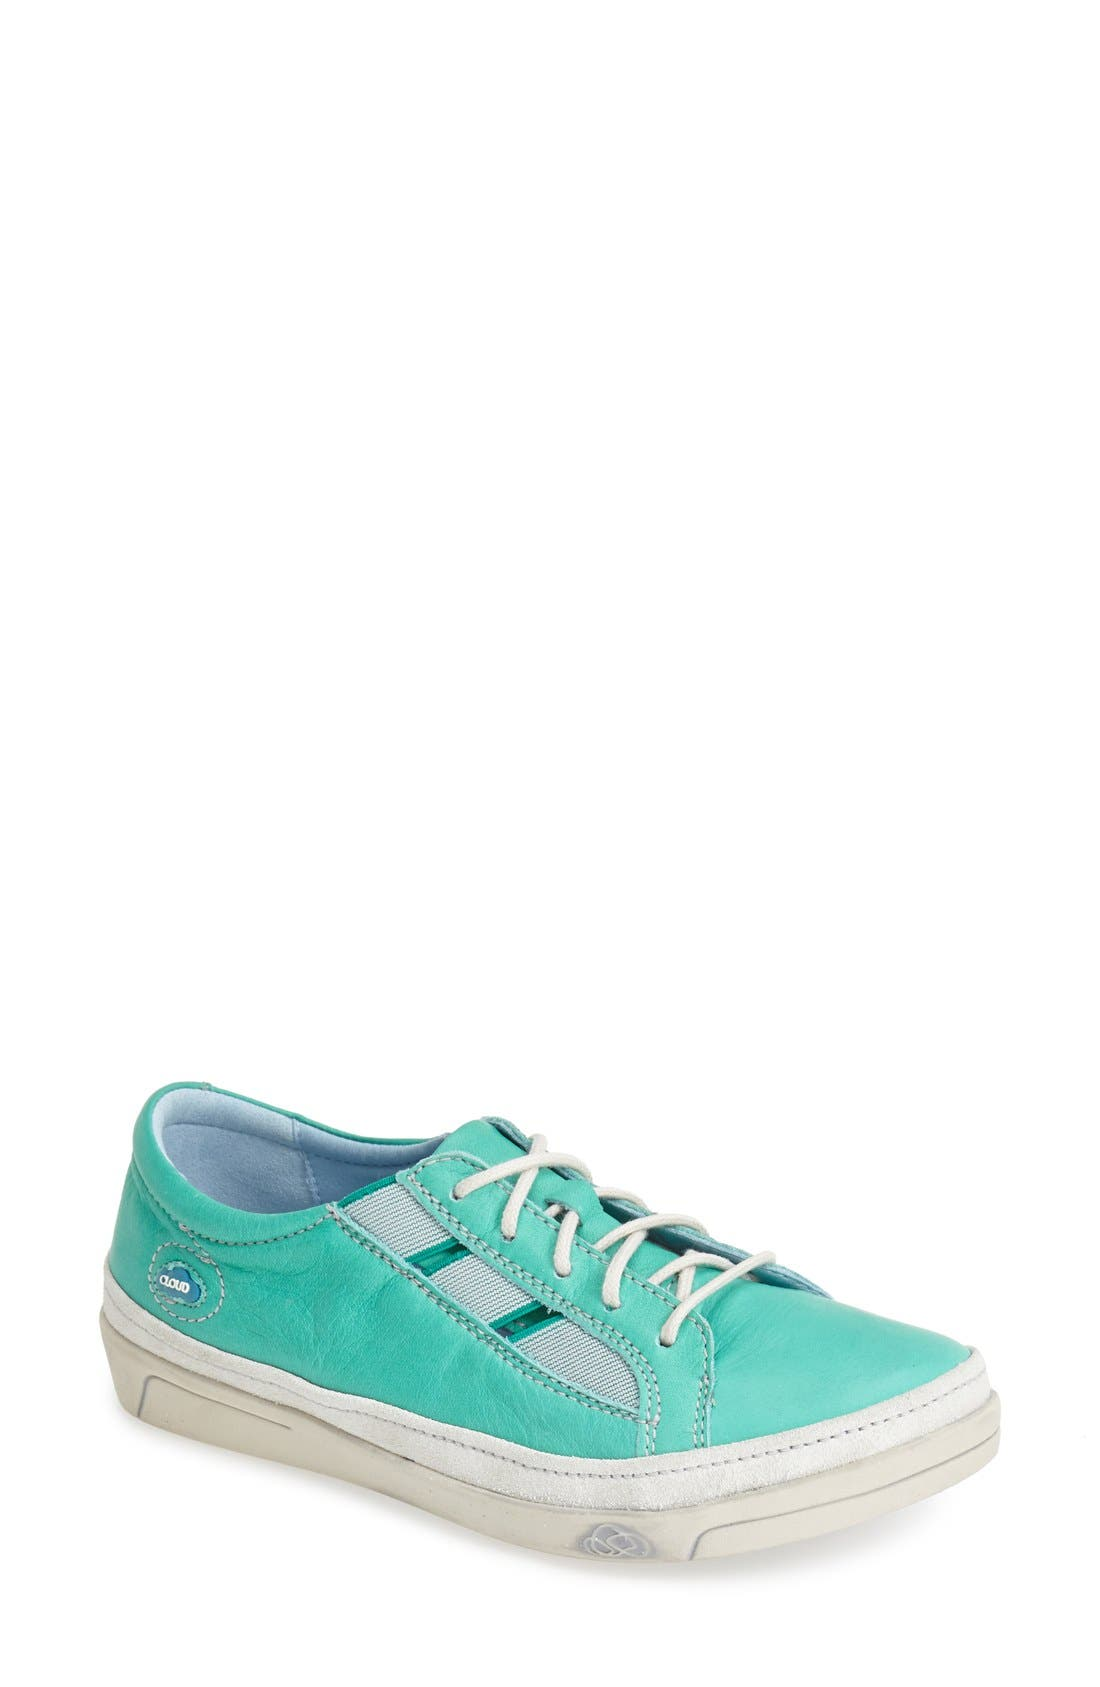 'Amazonas' Leather Sneaker,                         Main,                         color, GREEN